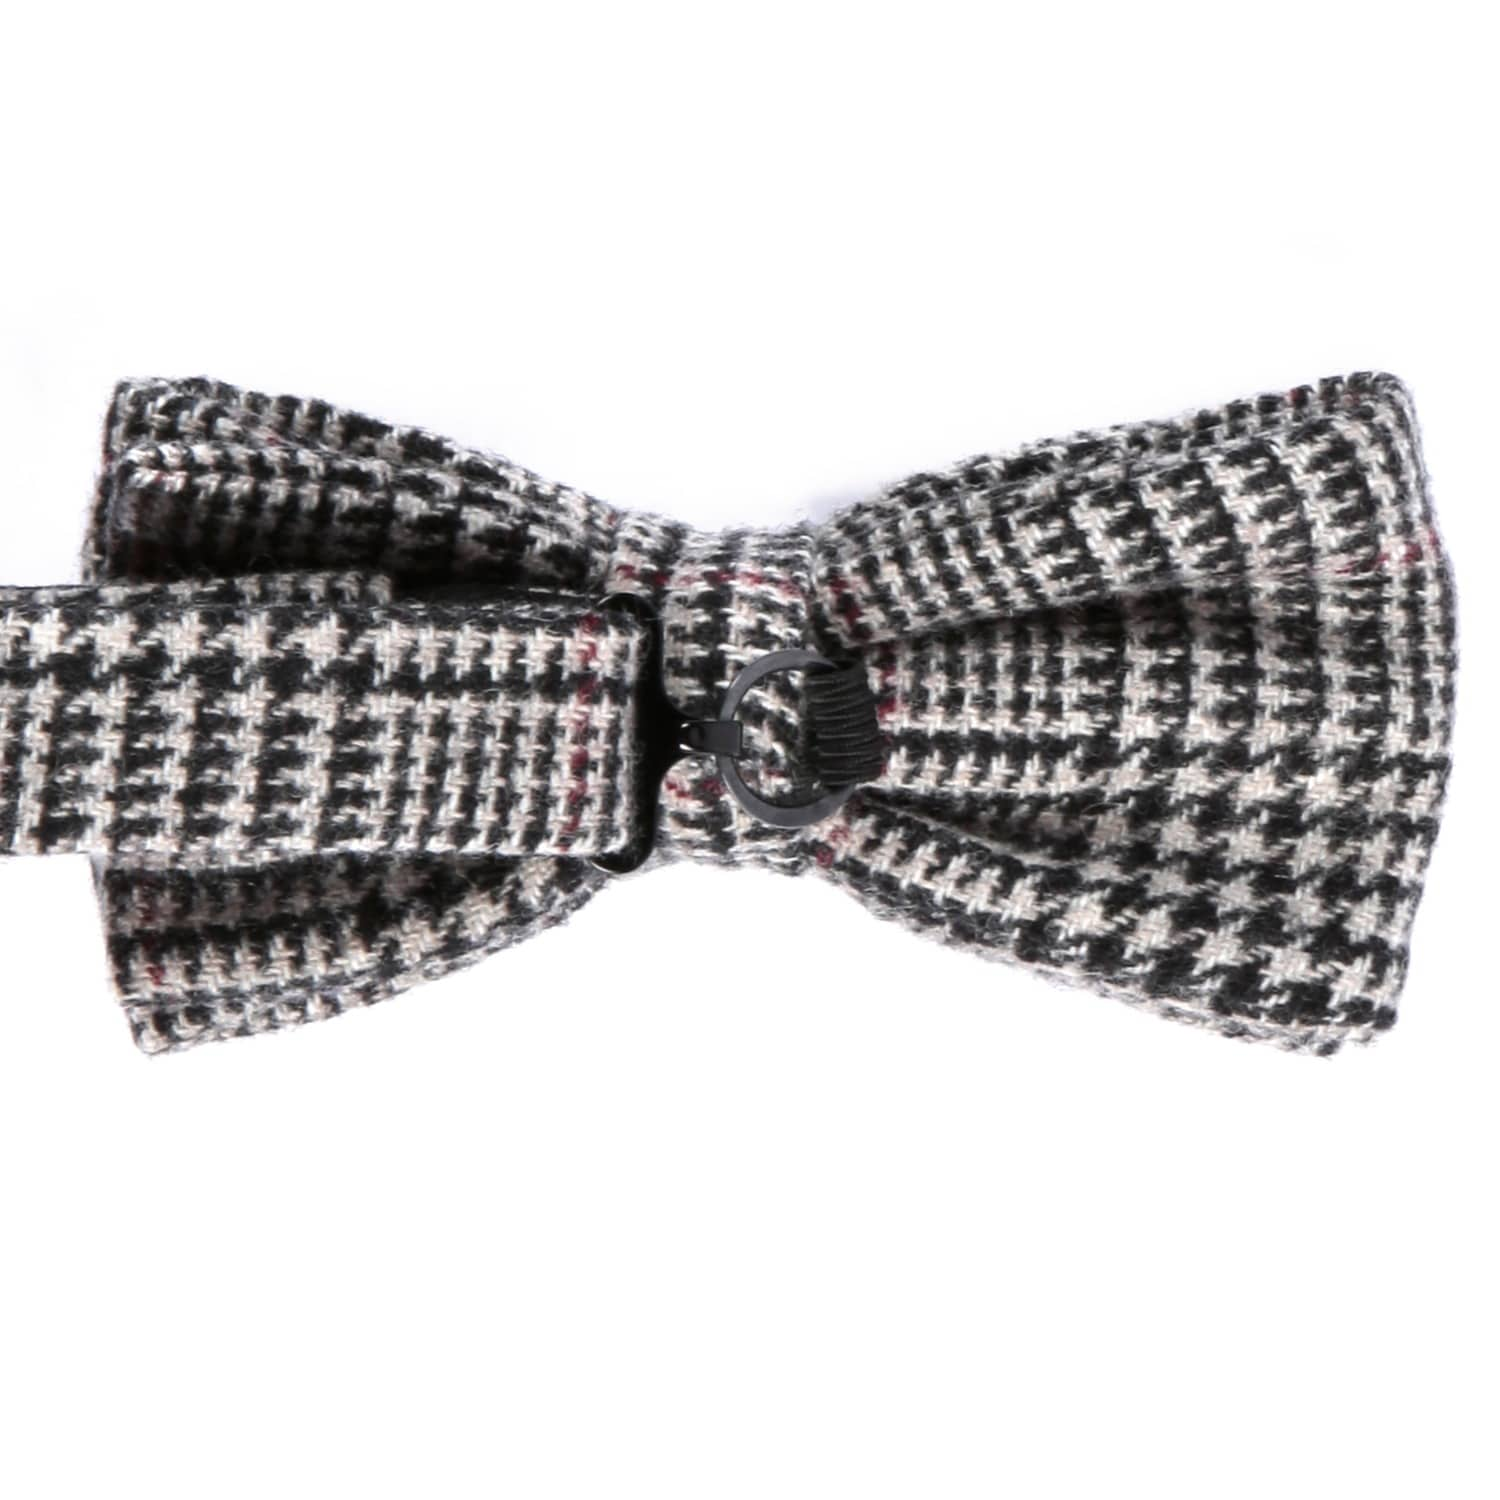 3801676077c2 Prince Of Wales Check Cashmere & Merino Wool Pre Tied Bow | EZRA ...